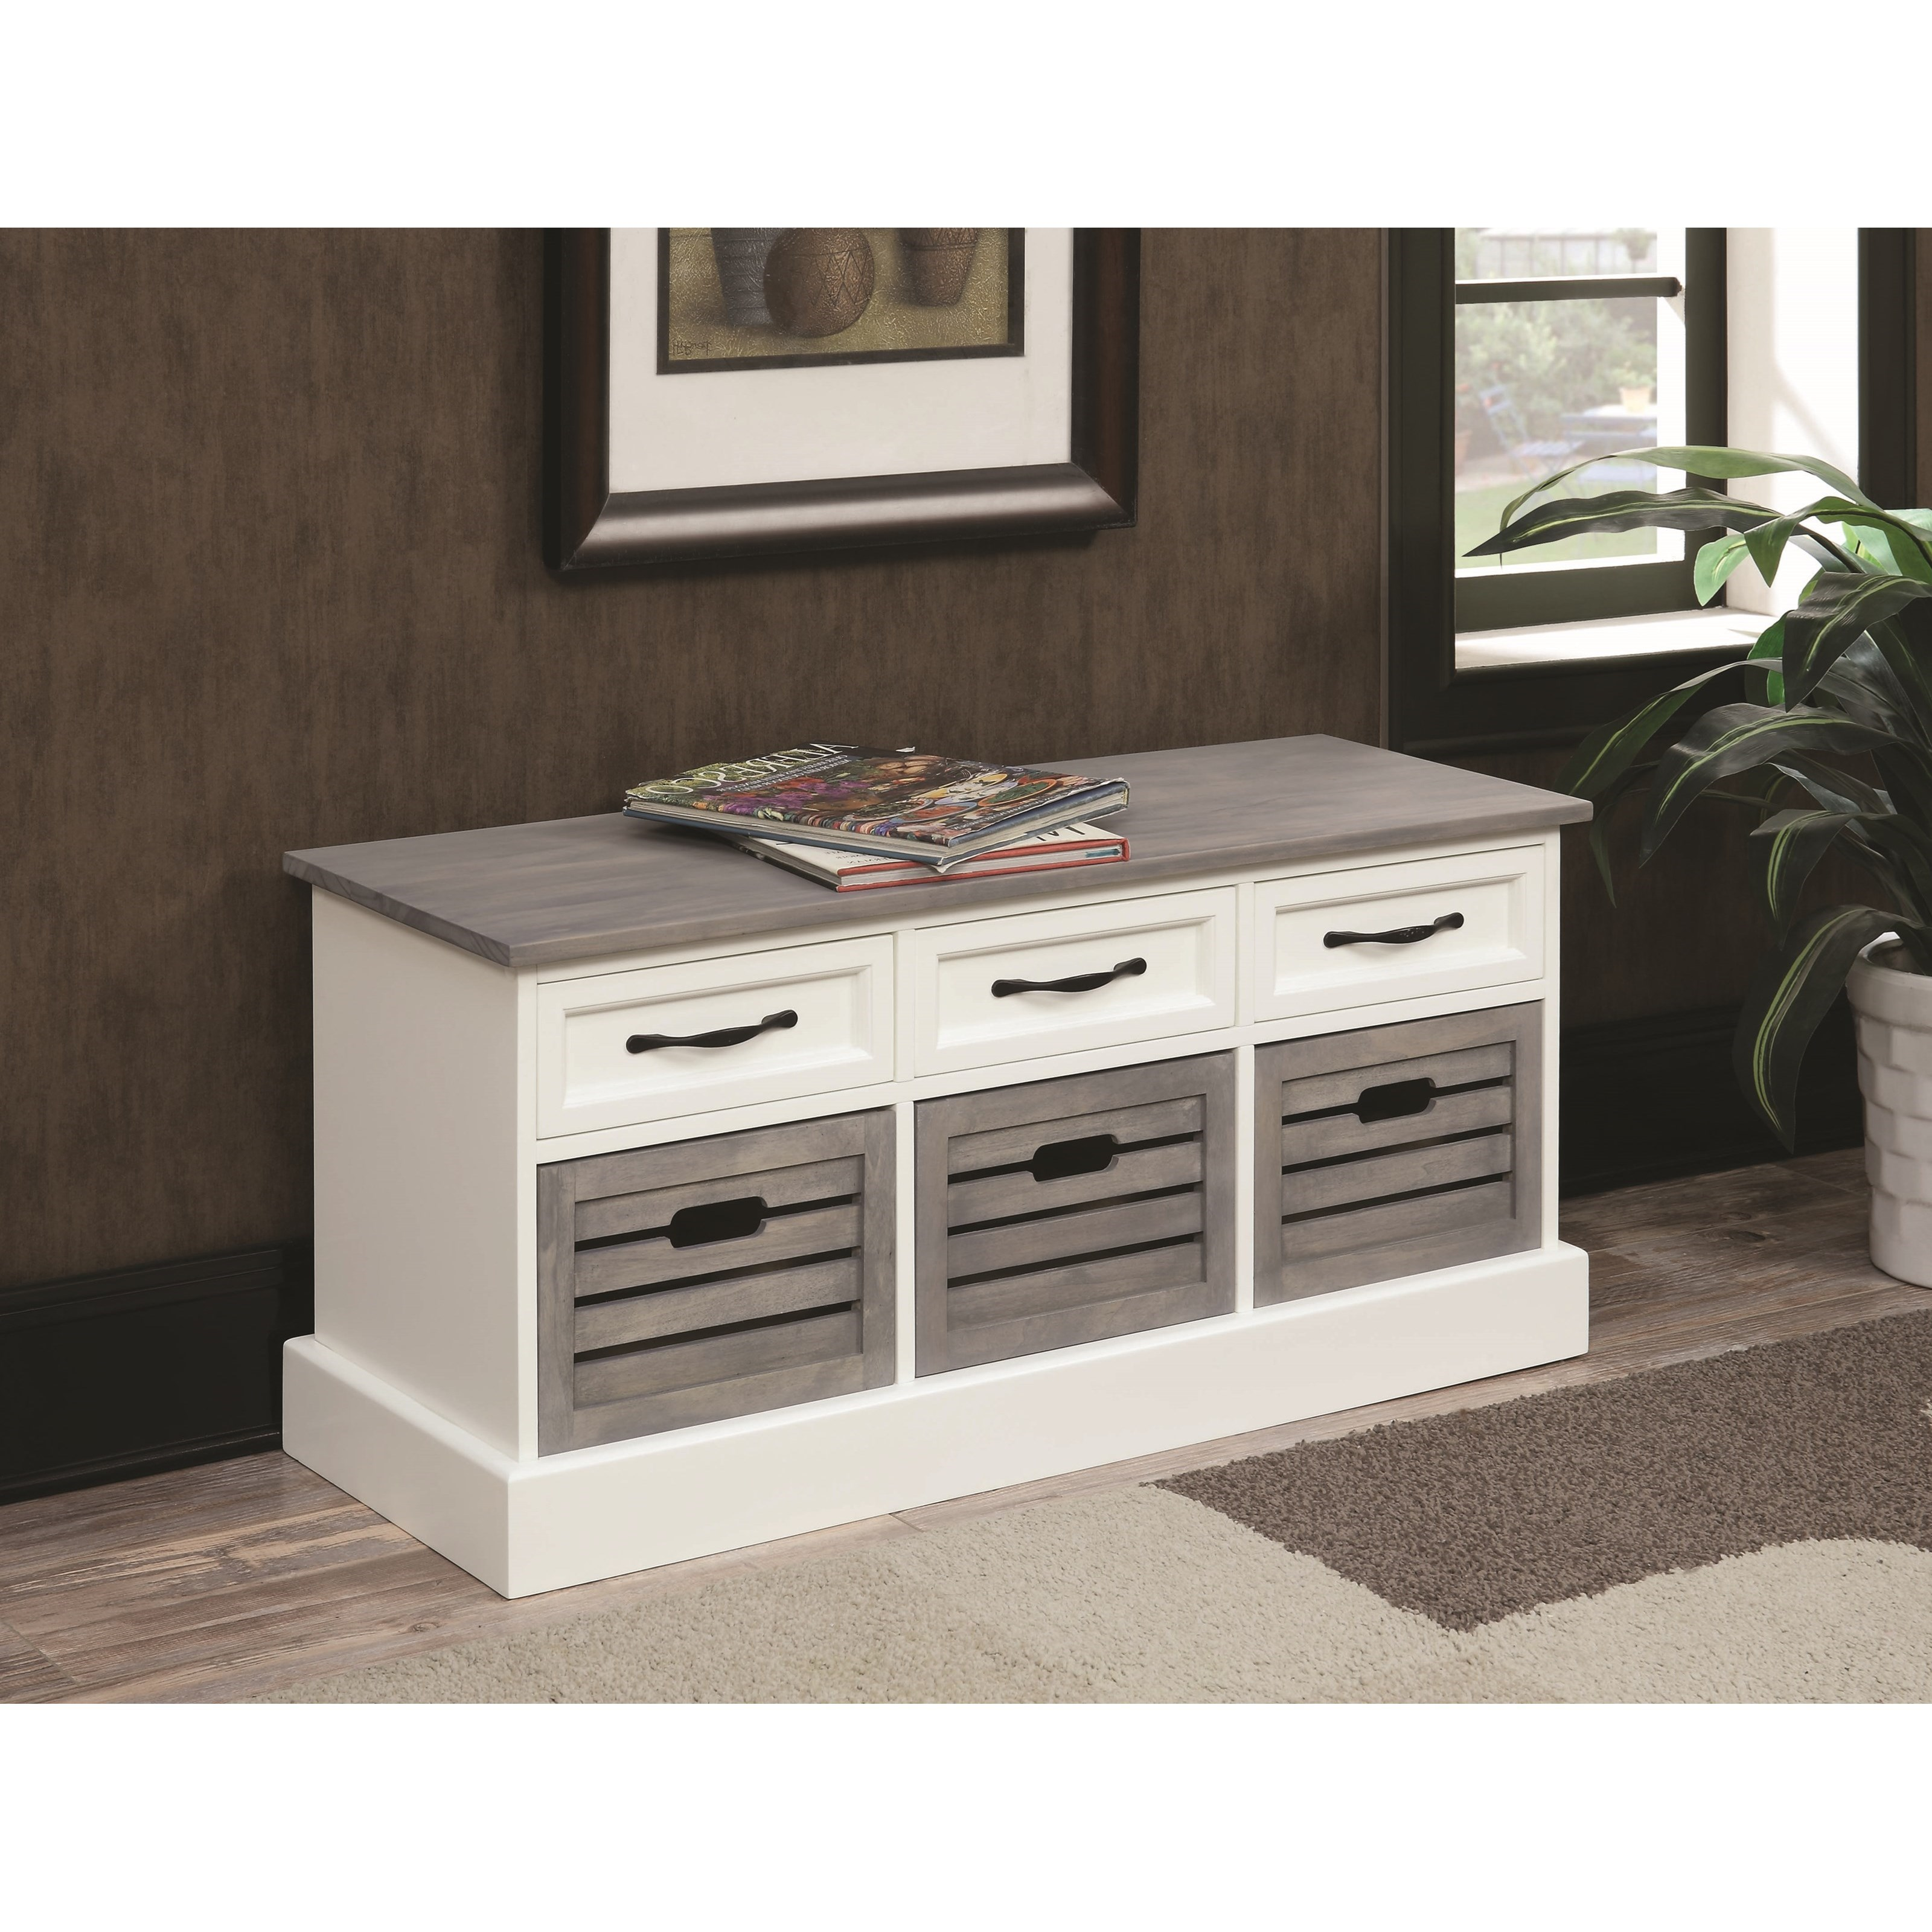 Benches Storage Bench by Coaster at Rife's Home Furniture